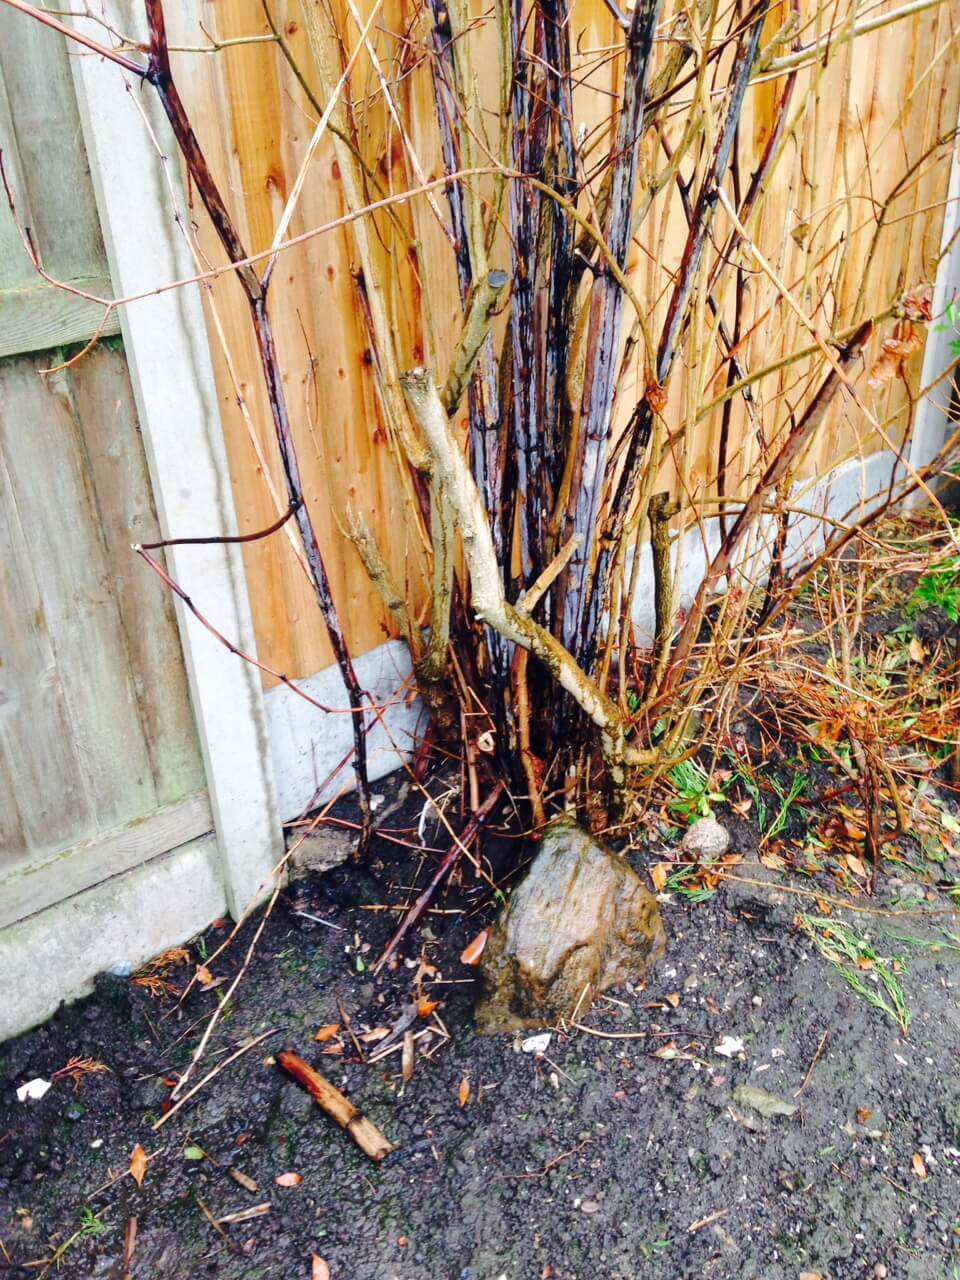 Winter growth of Japanese Knotweed